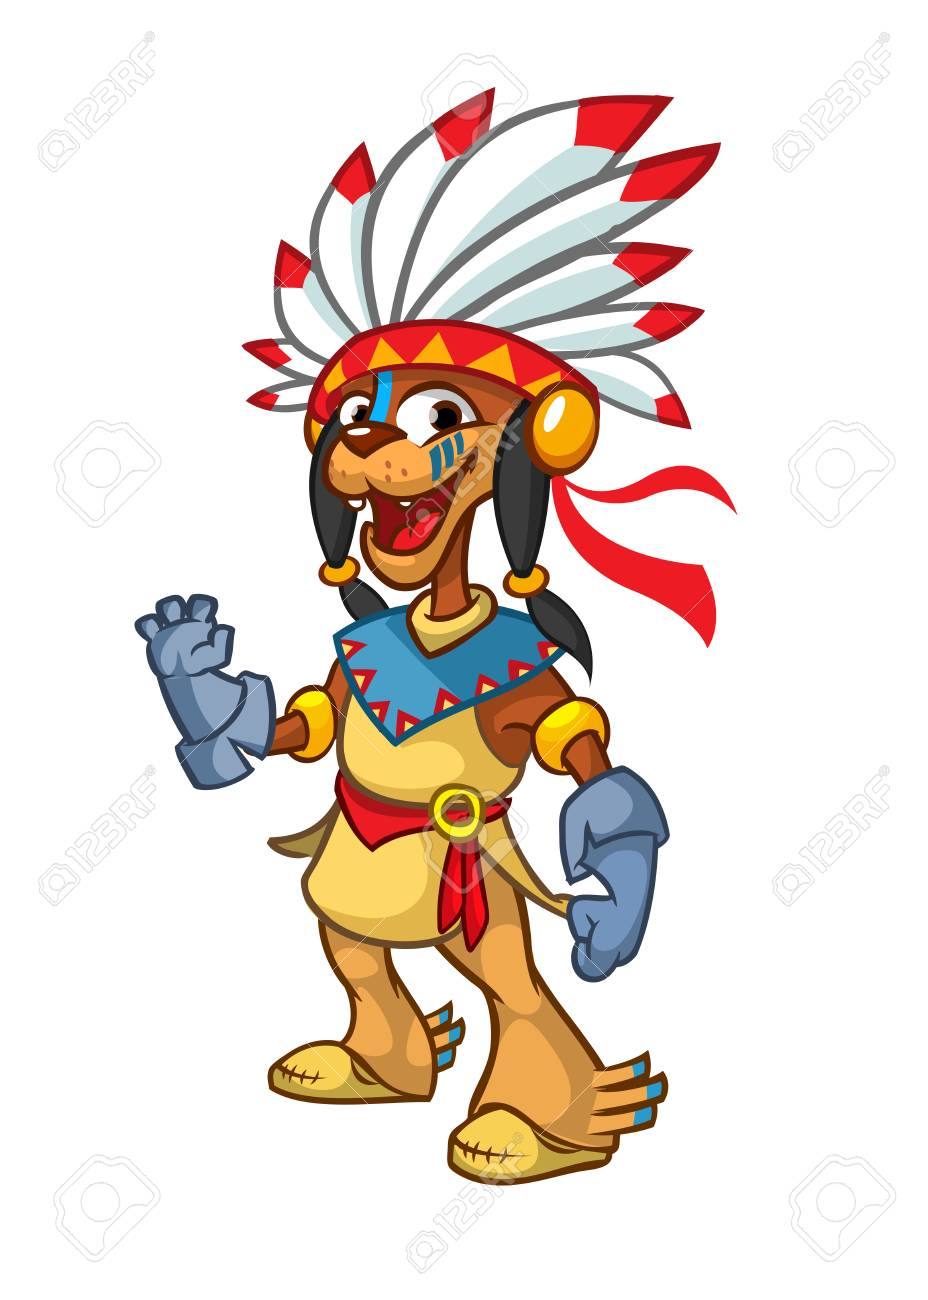 hight resolution of cartoon native american indian character illustration clipart stock vector 110101299